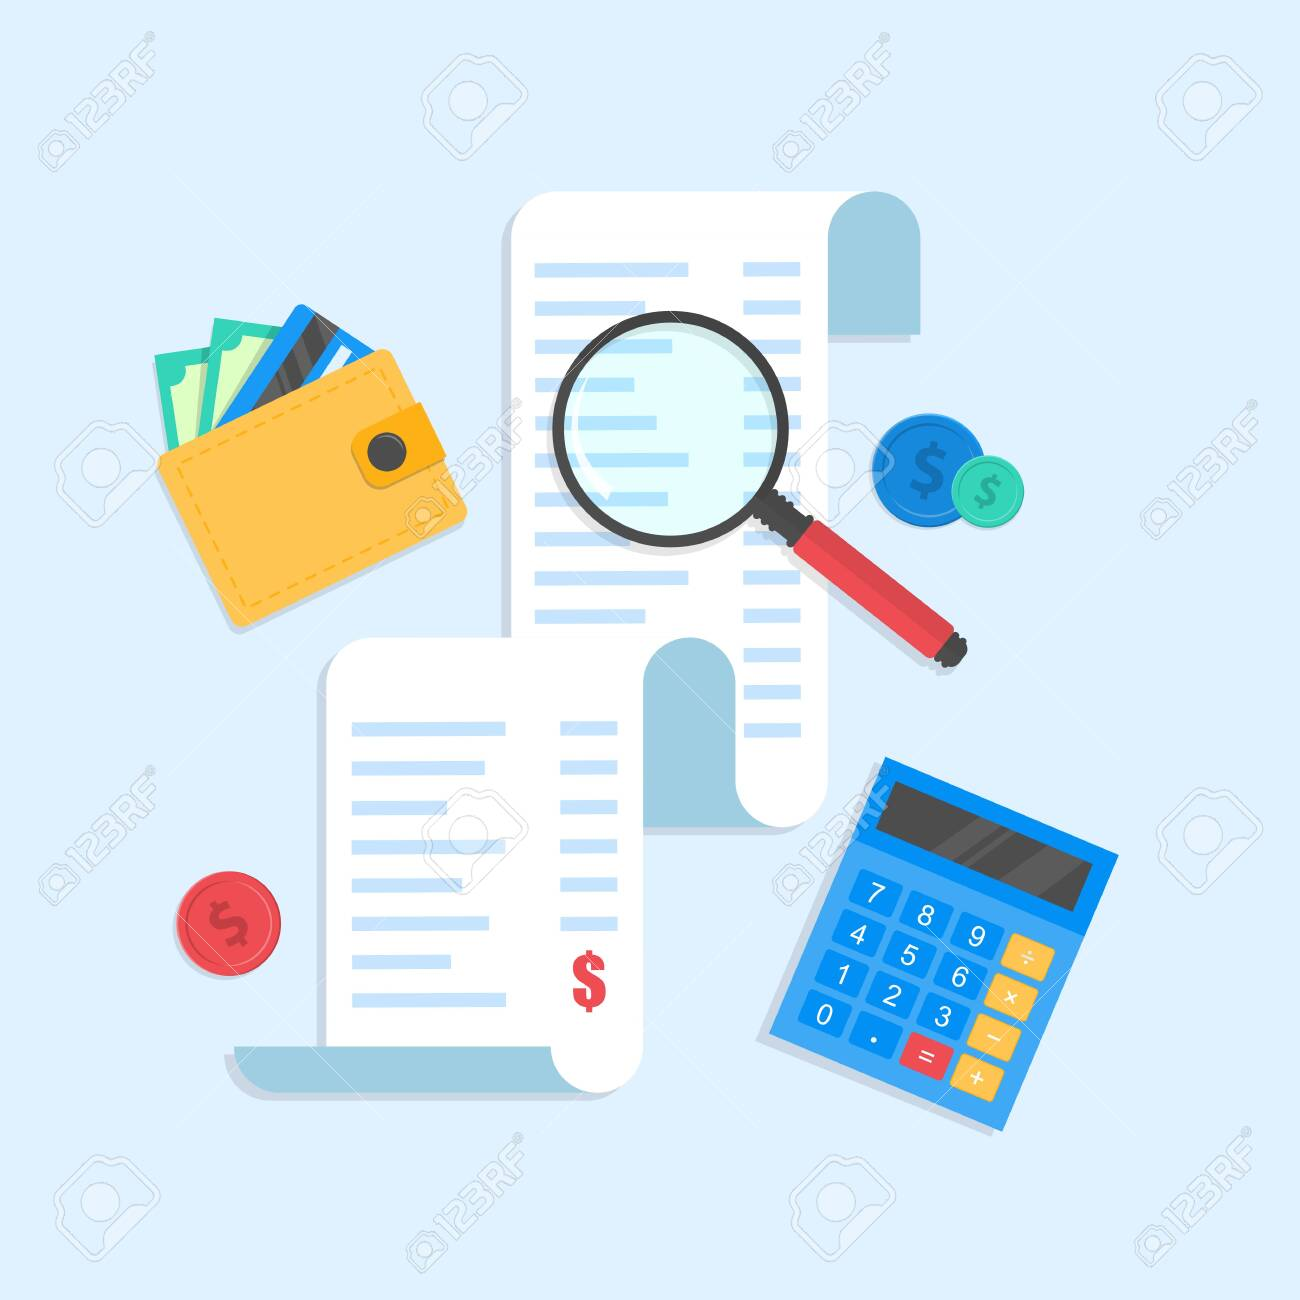 receipt or paper check. magnifying glass and wallet,calculator . Concepts for taxes, finance, accounting, business, accounting. - 144291424